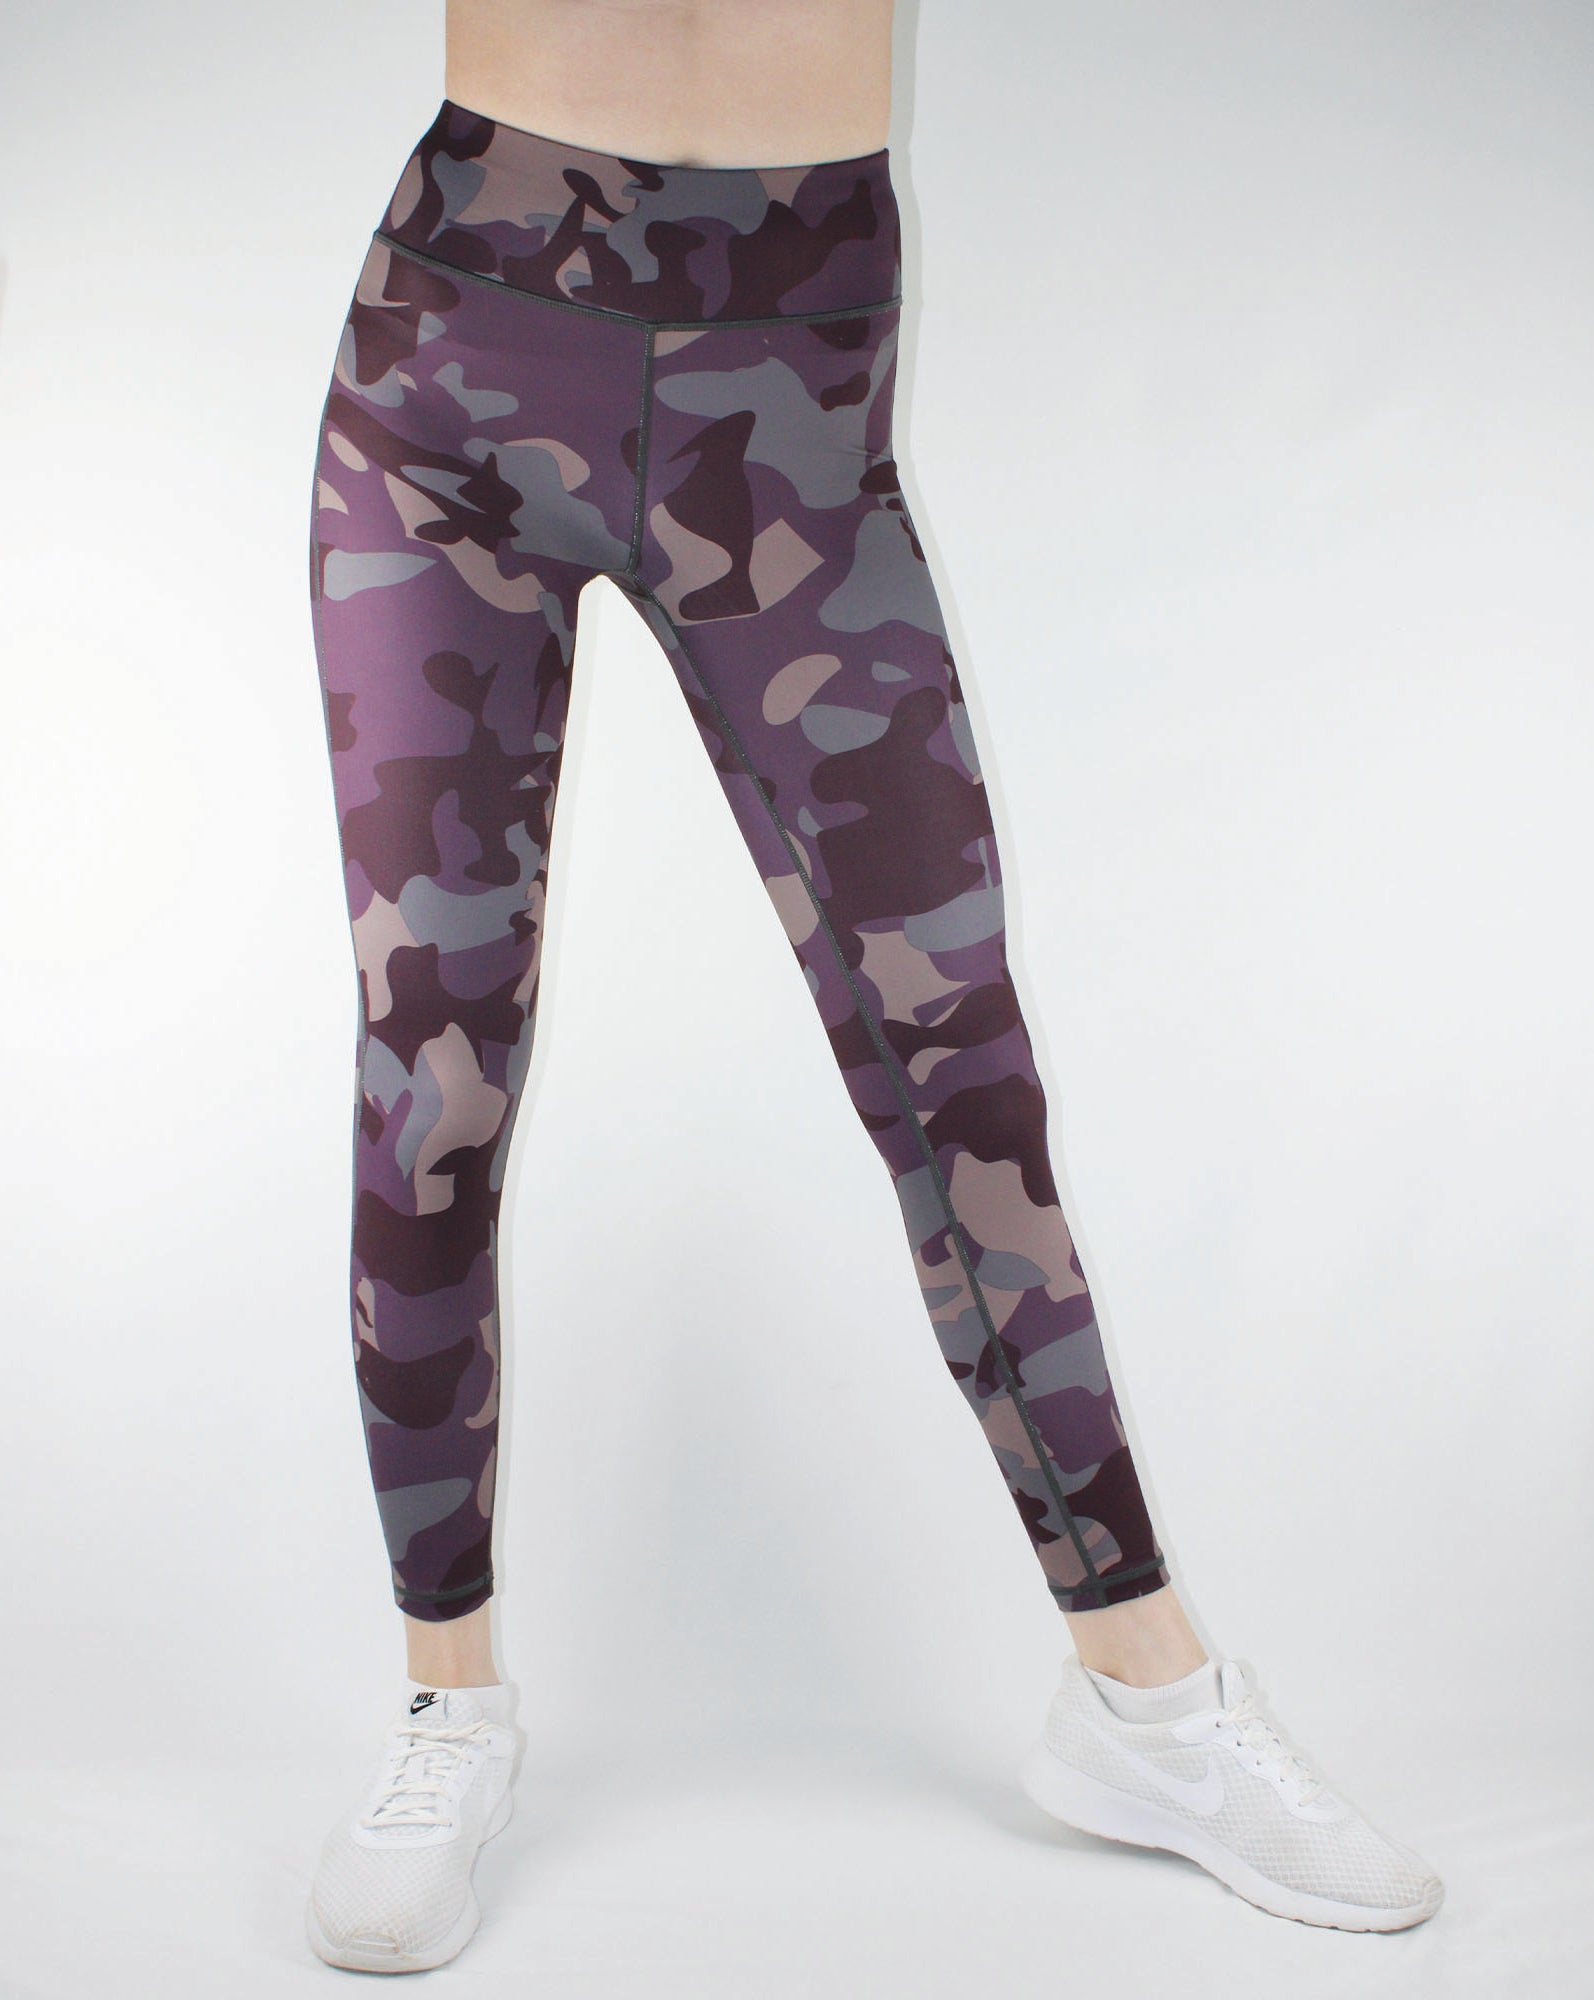 BRIANNA CAMO SUPERSOFT WOMEN'S LEGGINGS